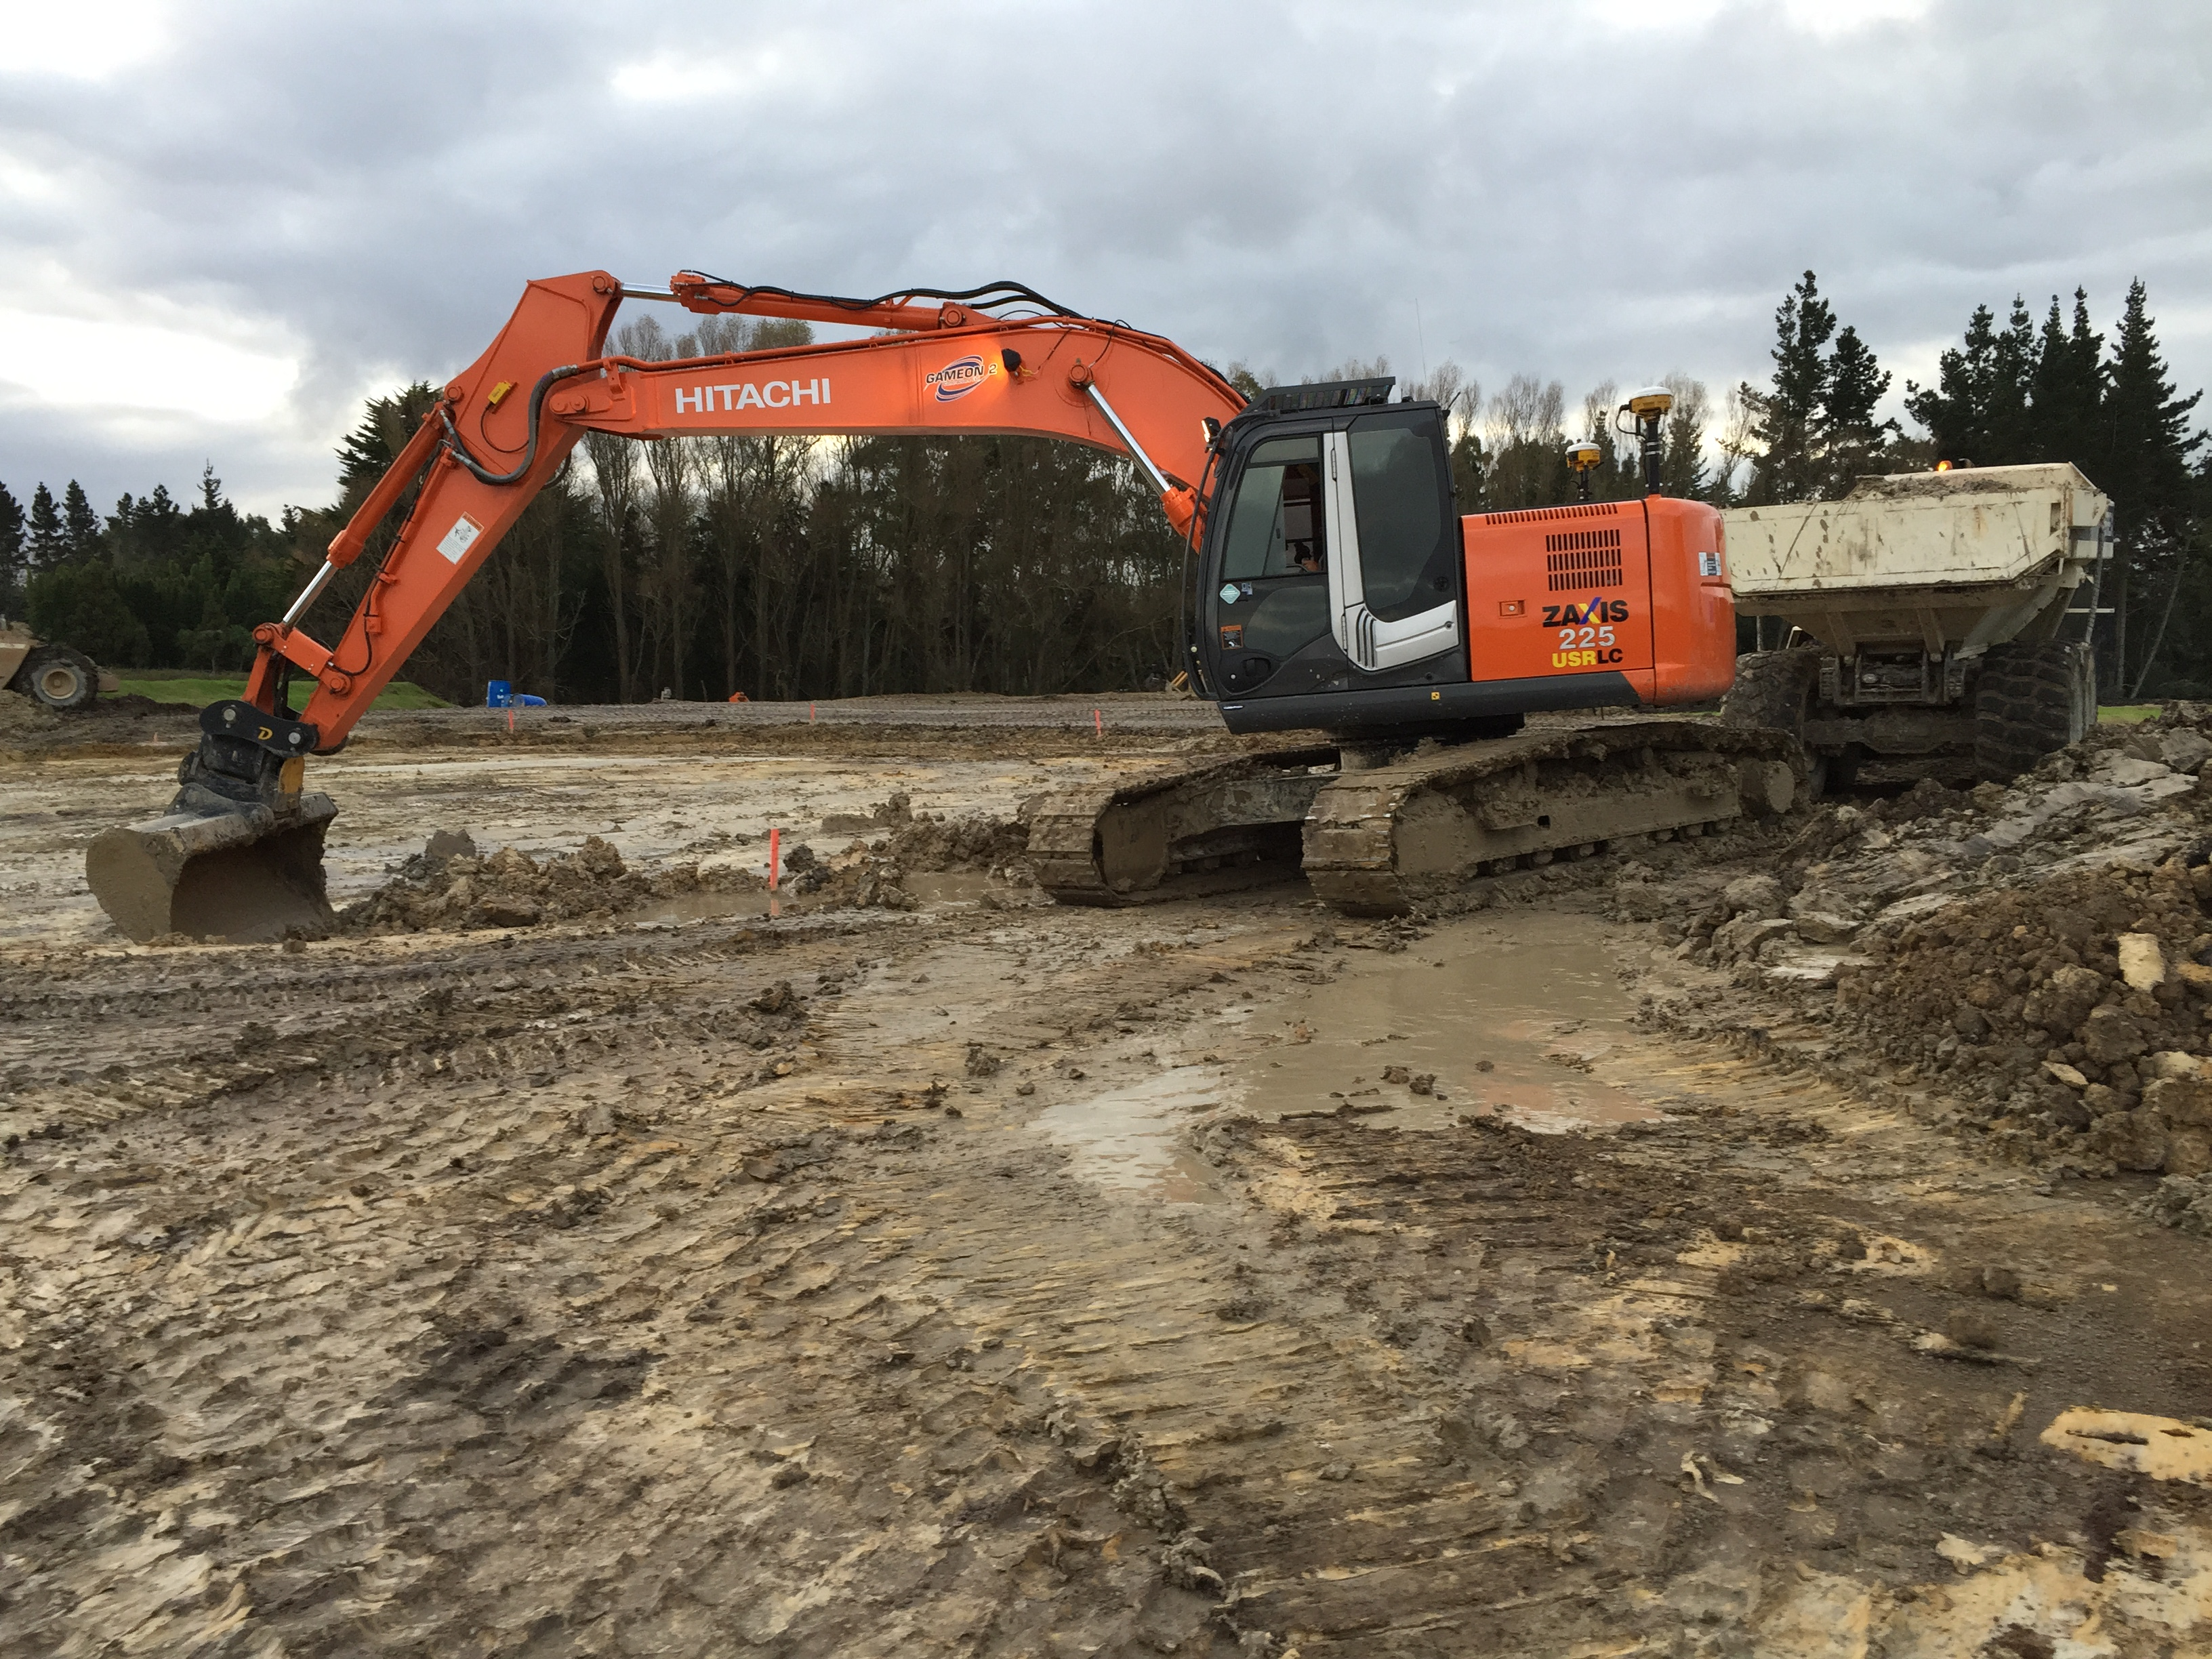 Active Survey Ltd